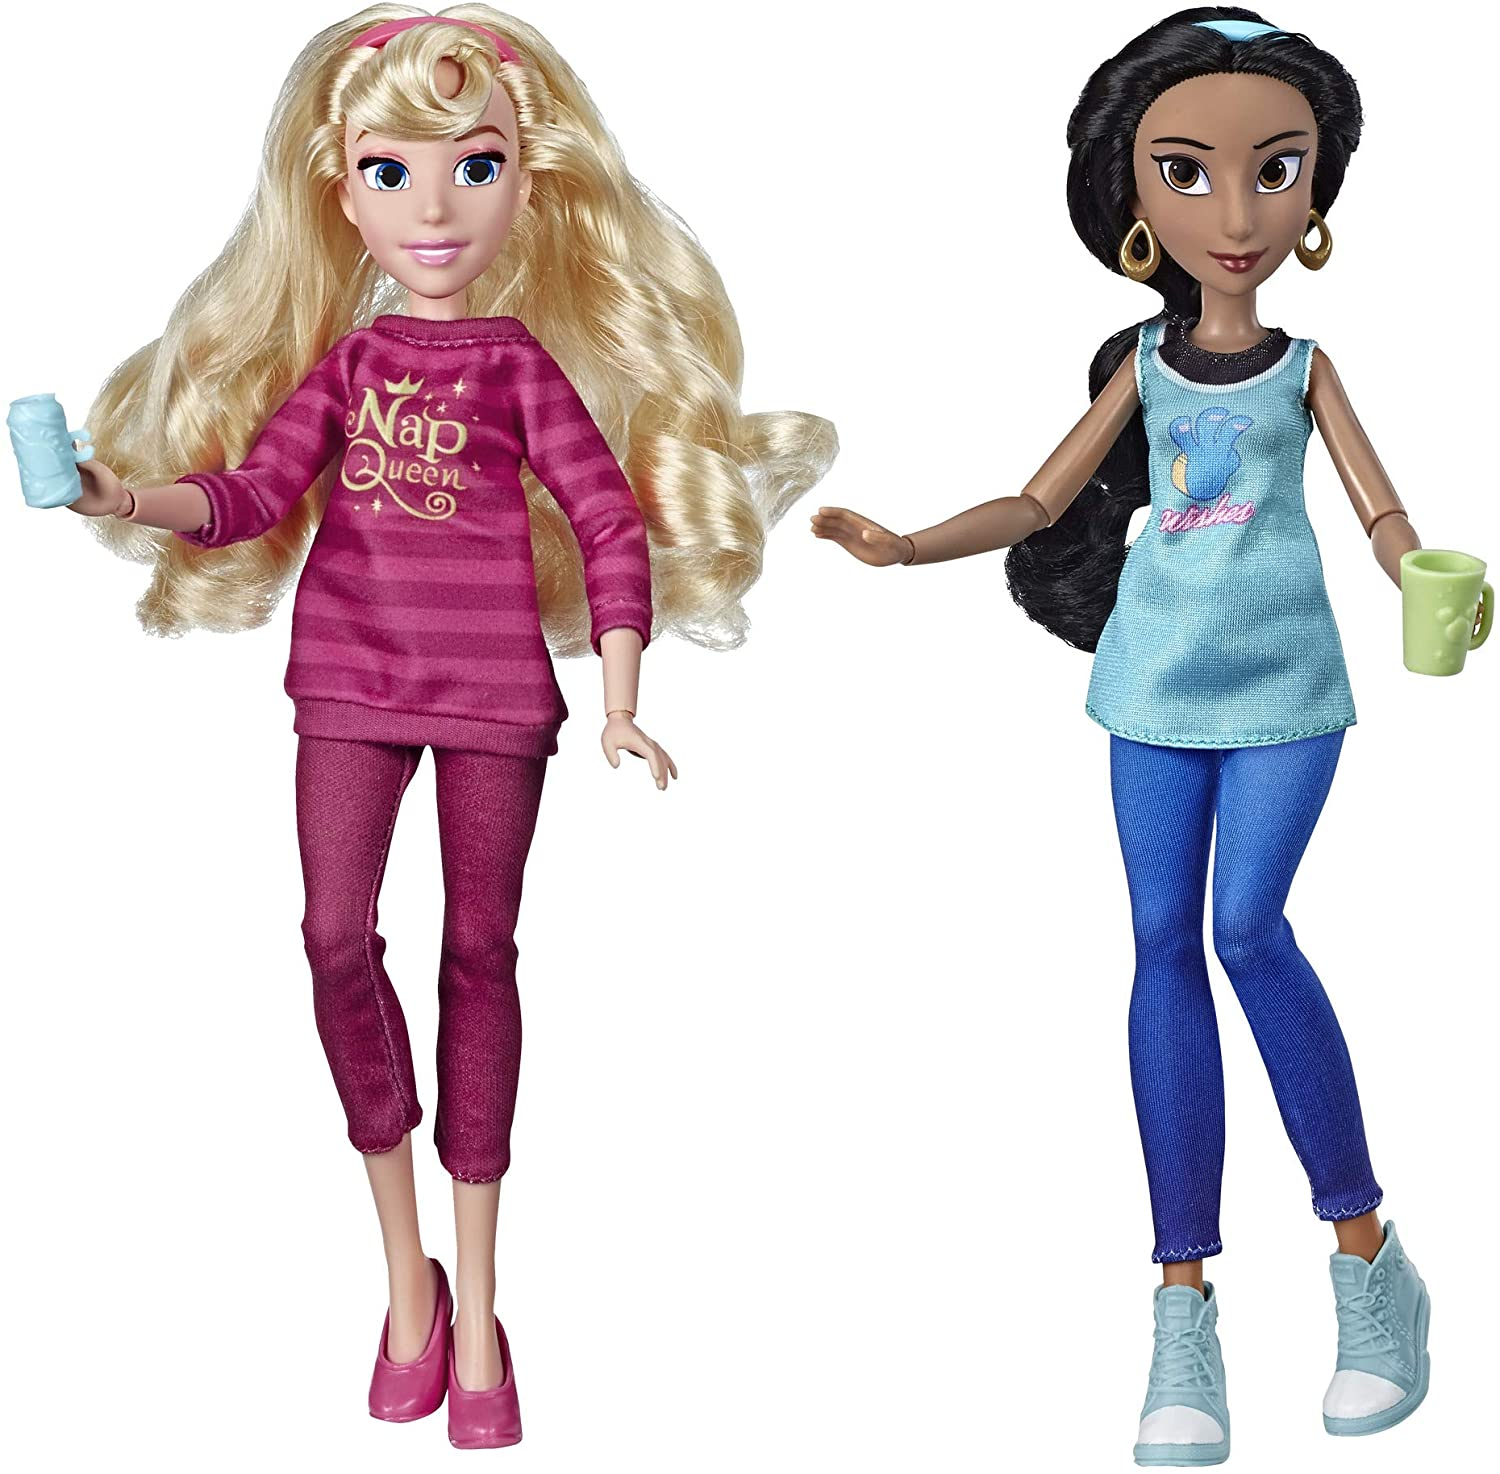 Amazon Com Disney Princess Ralph Breaks The Internet Movie Dolls Jasmine Aurora Dolls With Comfy Clothes Accessories Toys Games